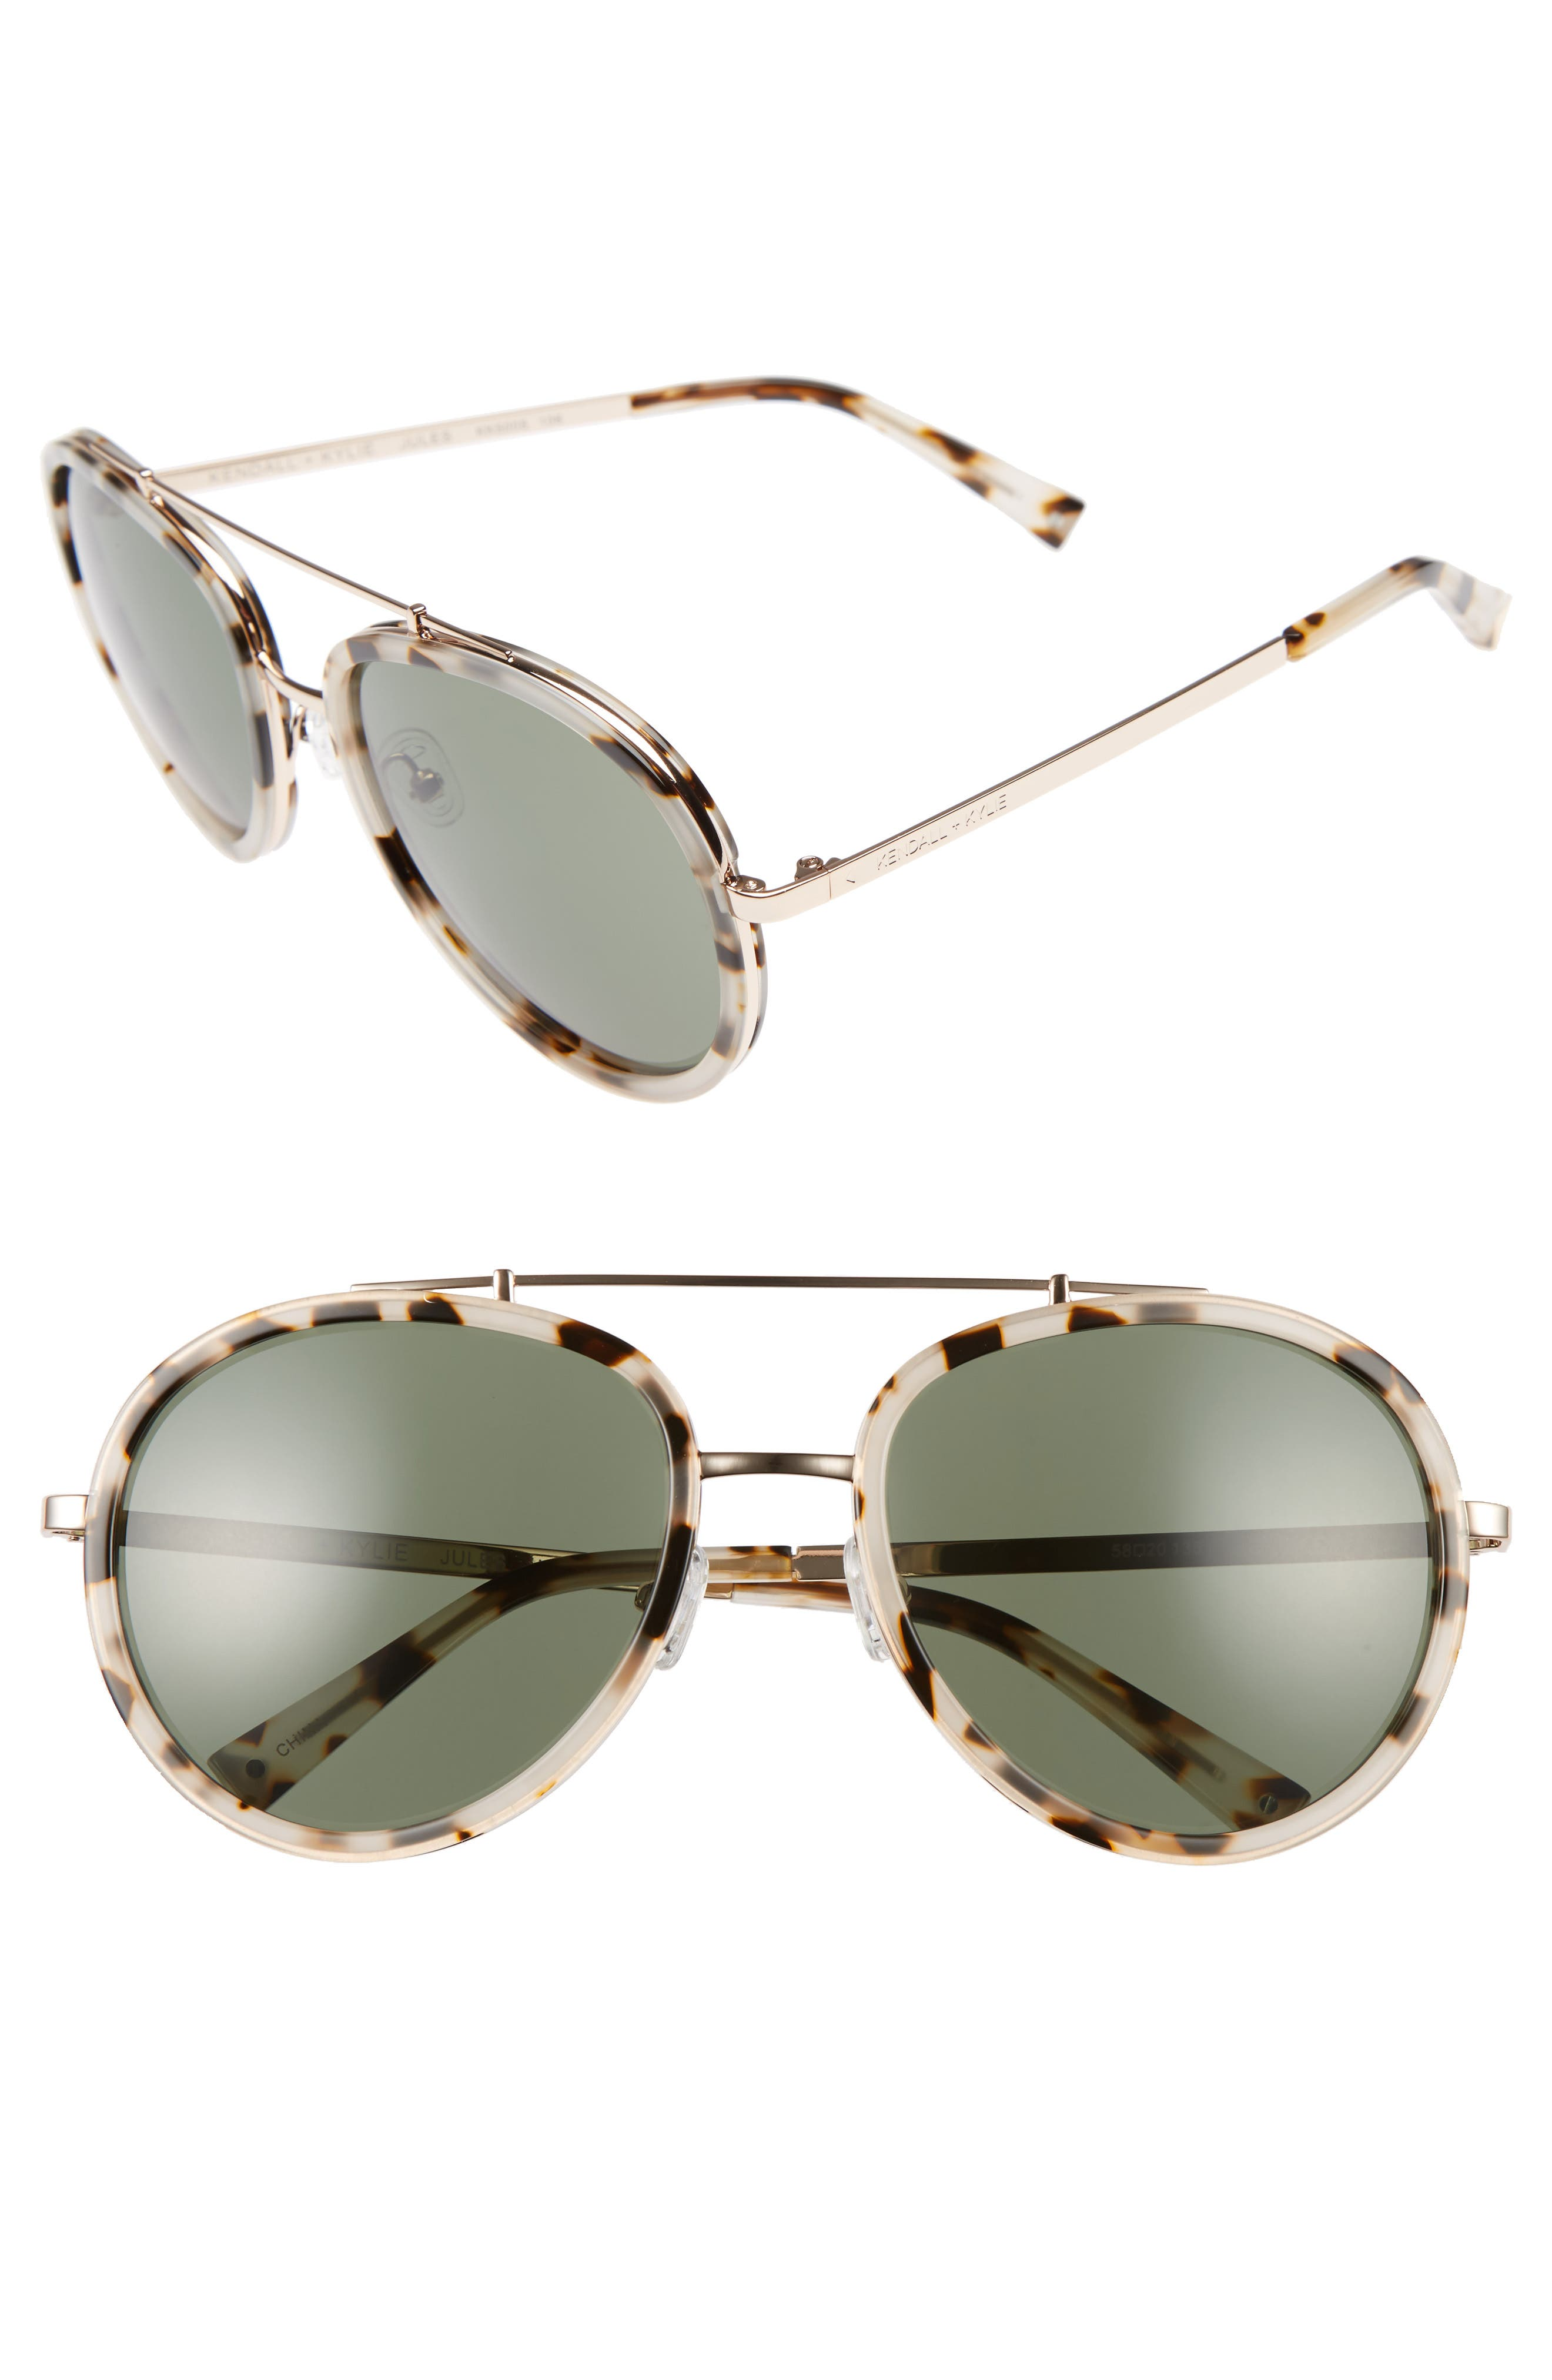 Jules 58mm Aviator Sunglasses,                         Main,                         color, Crystal Black/ White/ Gold